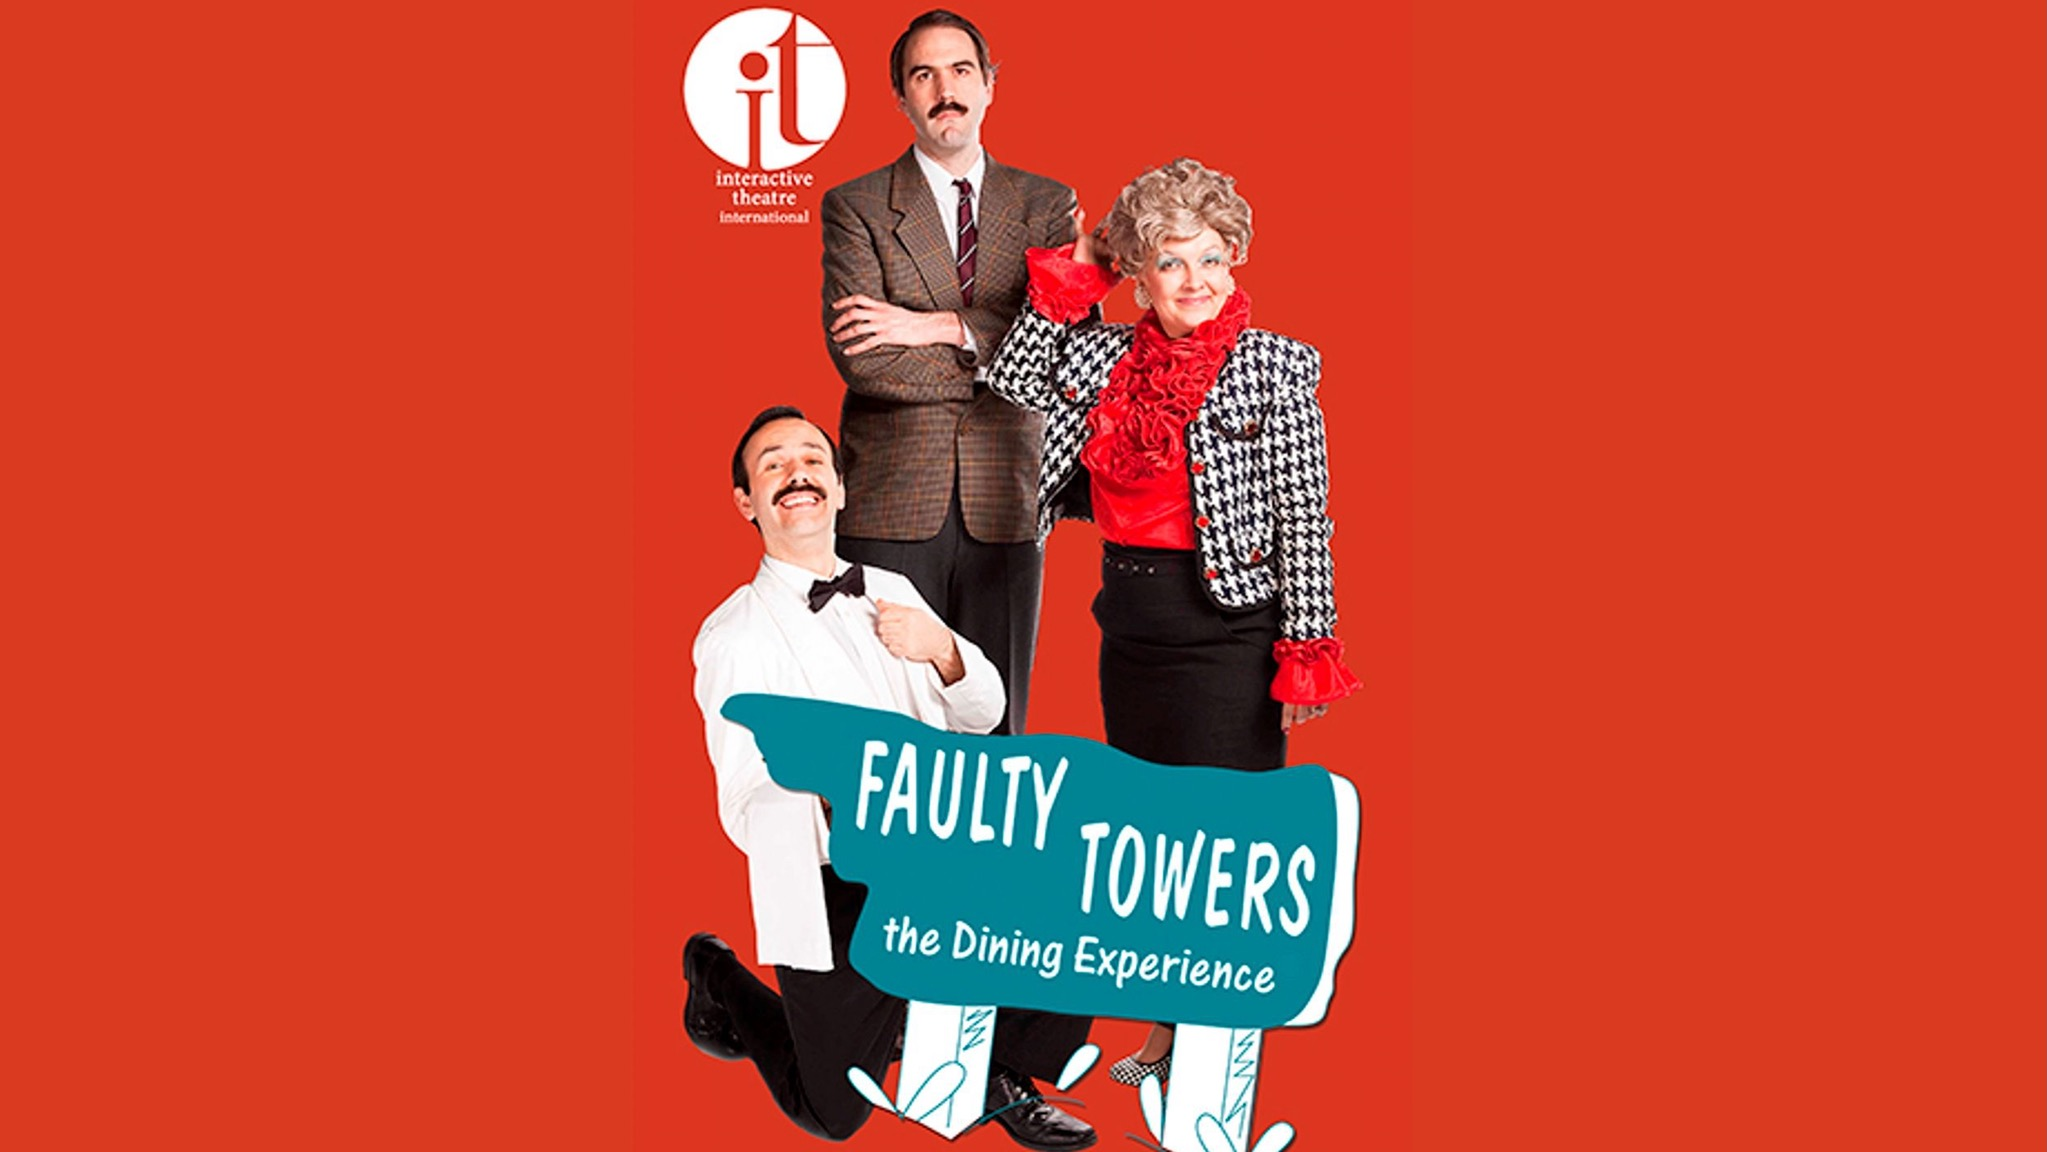 The cast of Faulty Towers